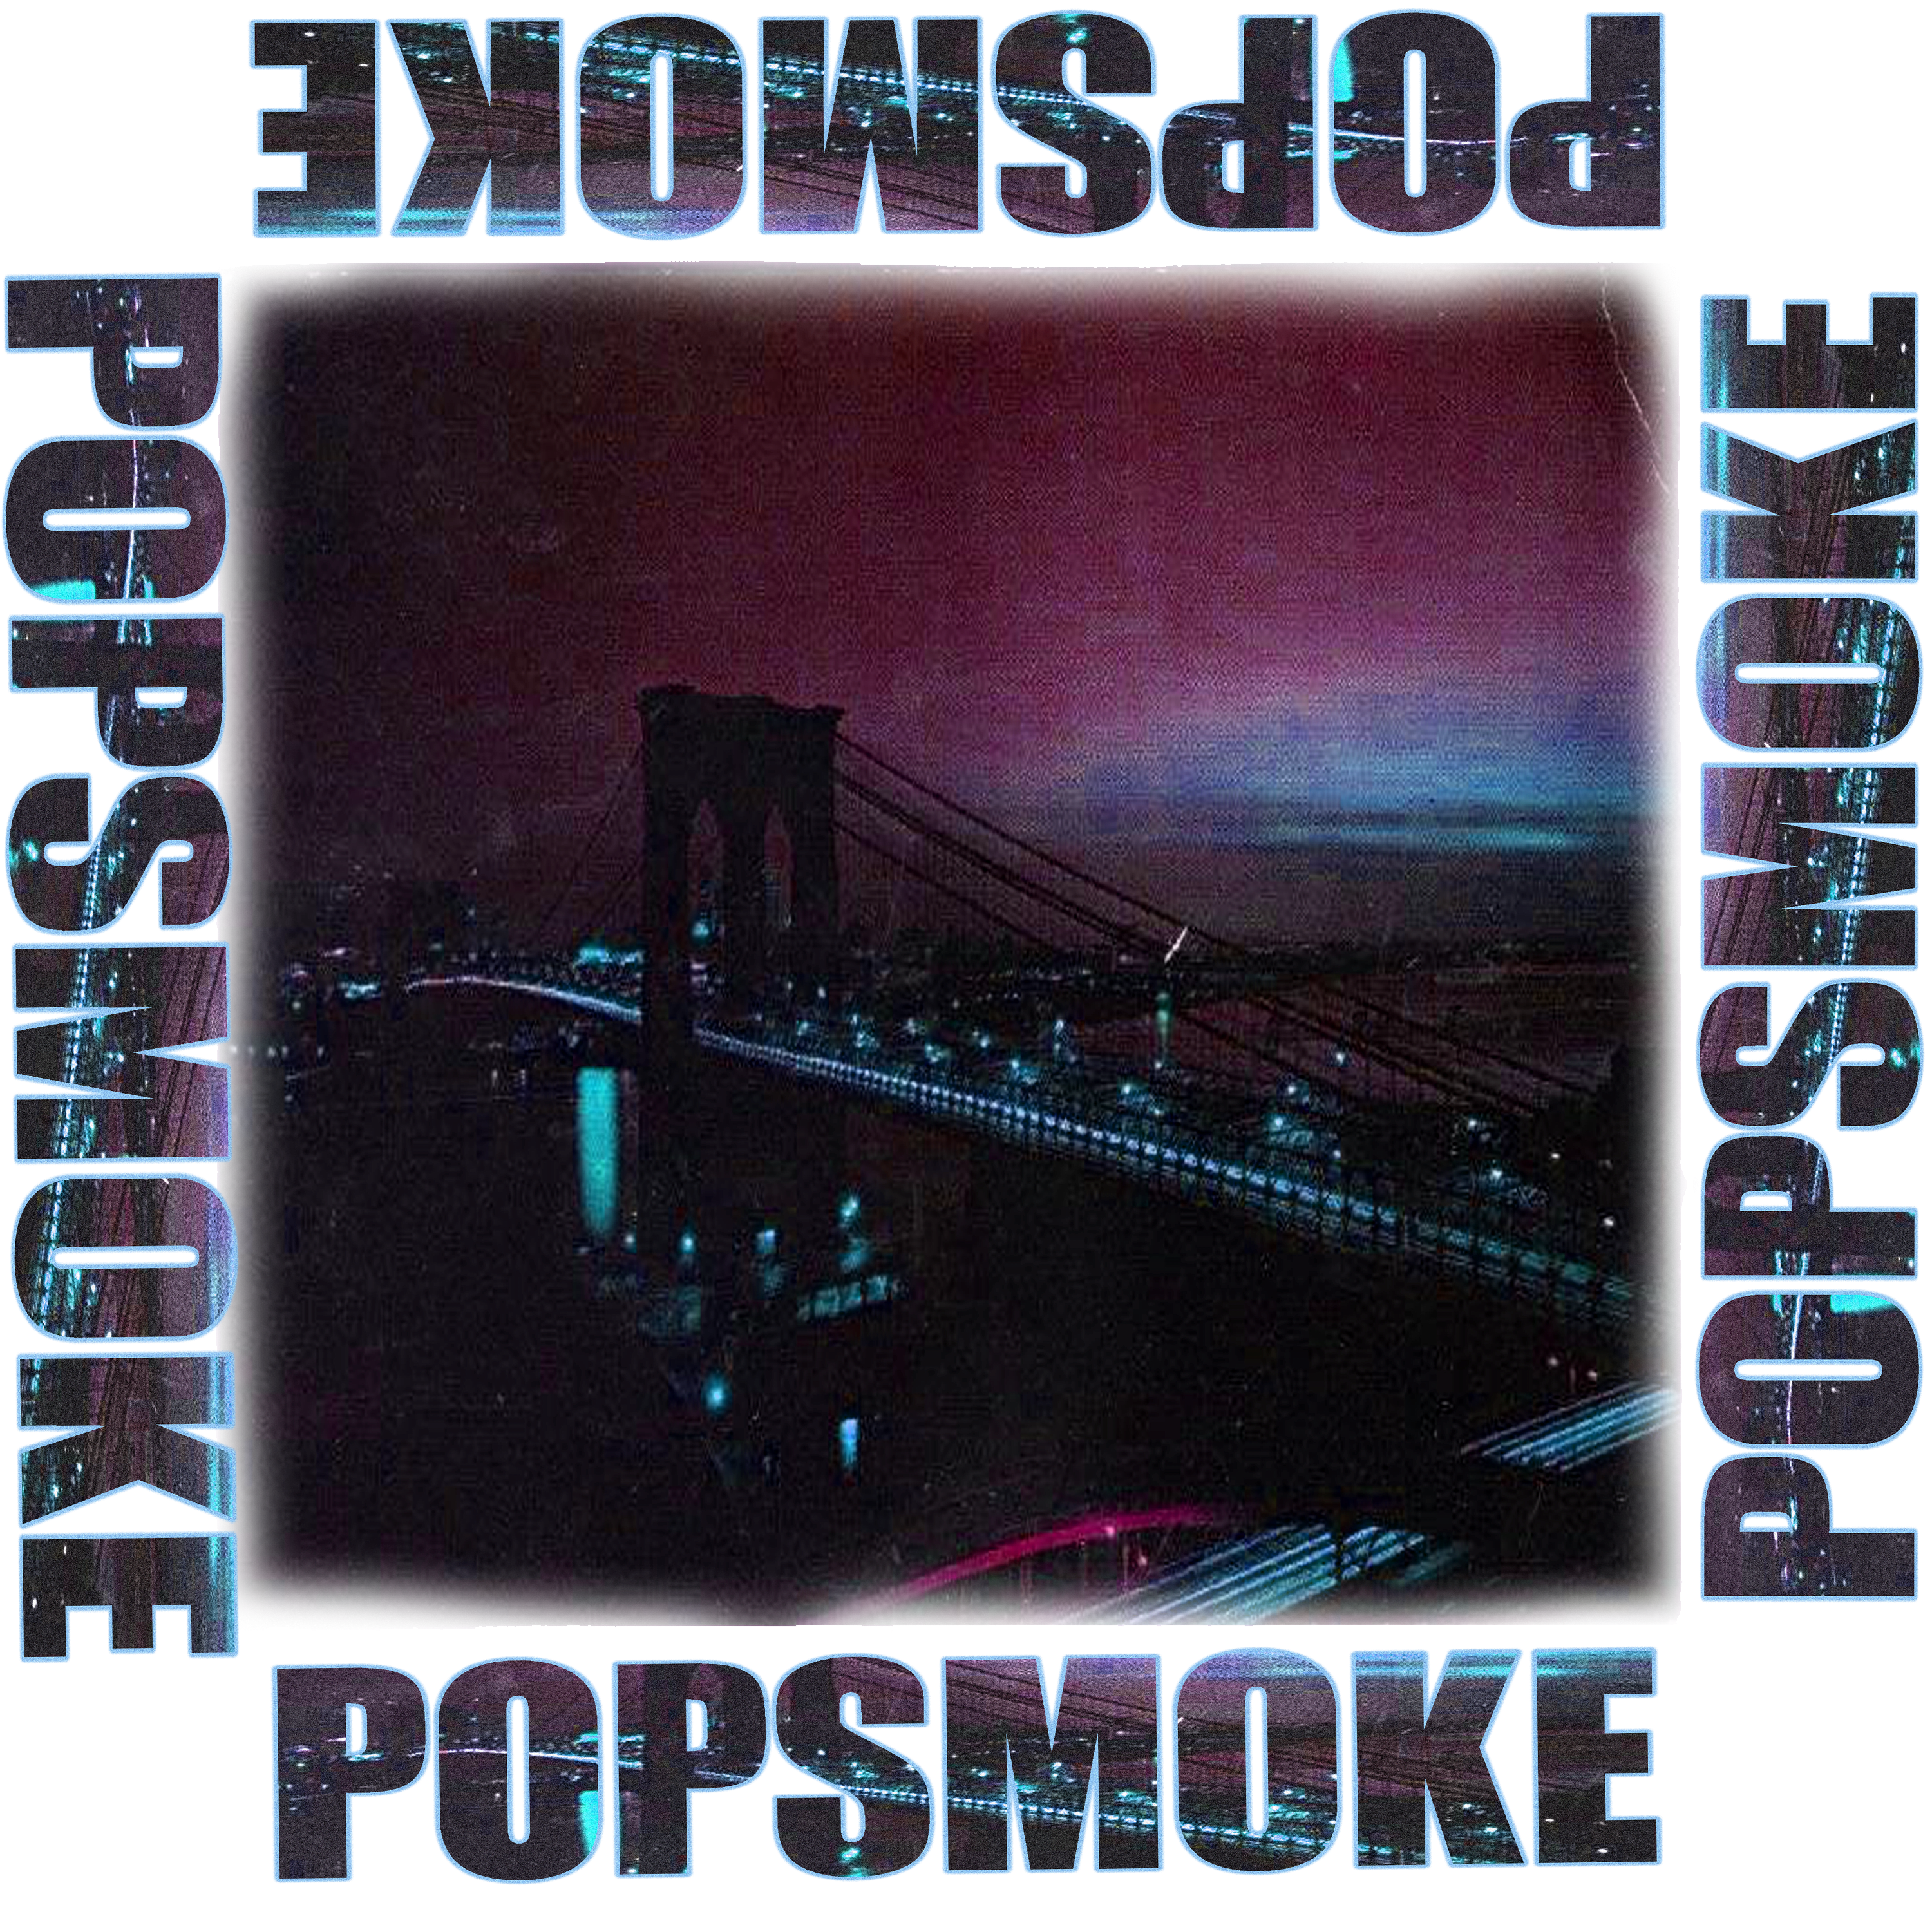 This is a photo of Pop Smoke.